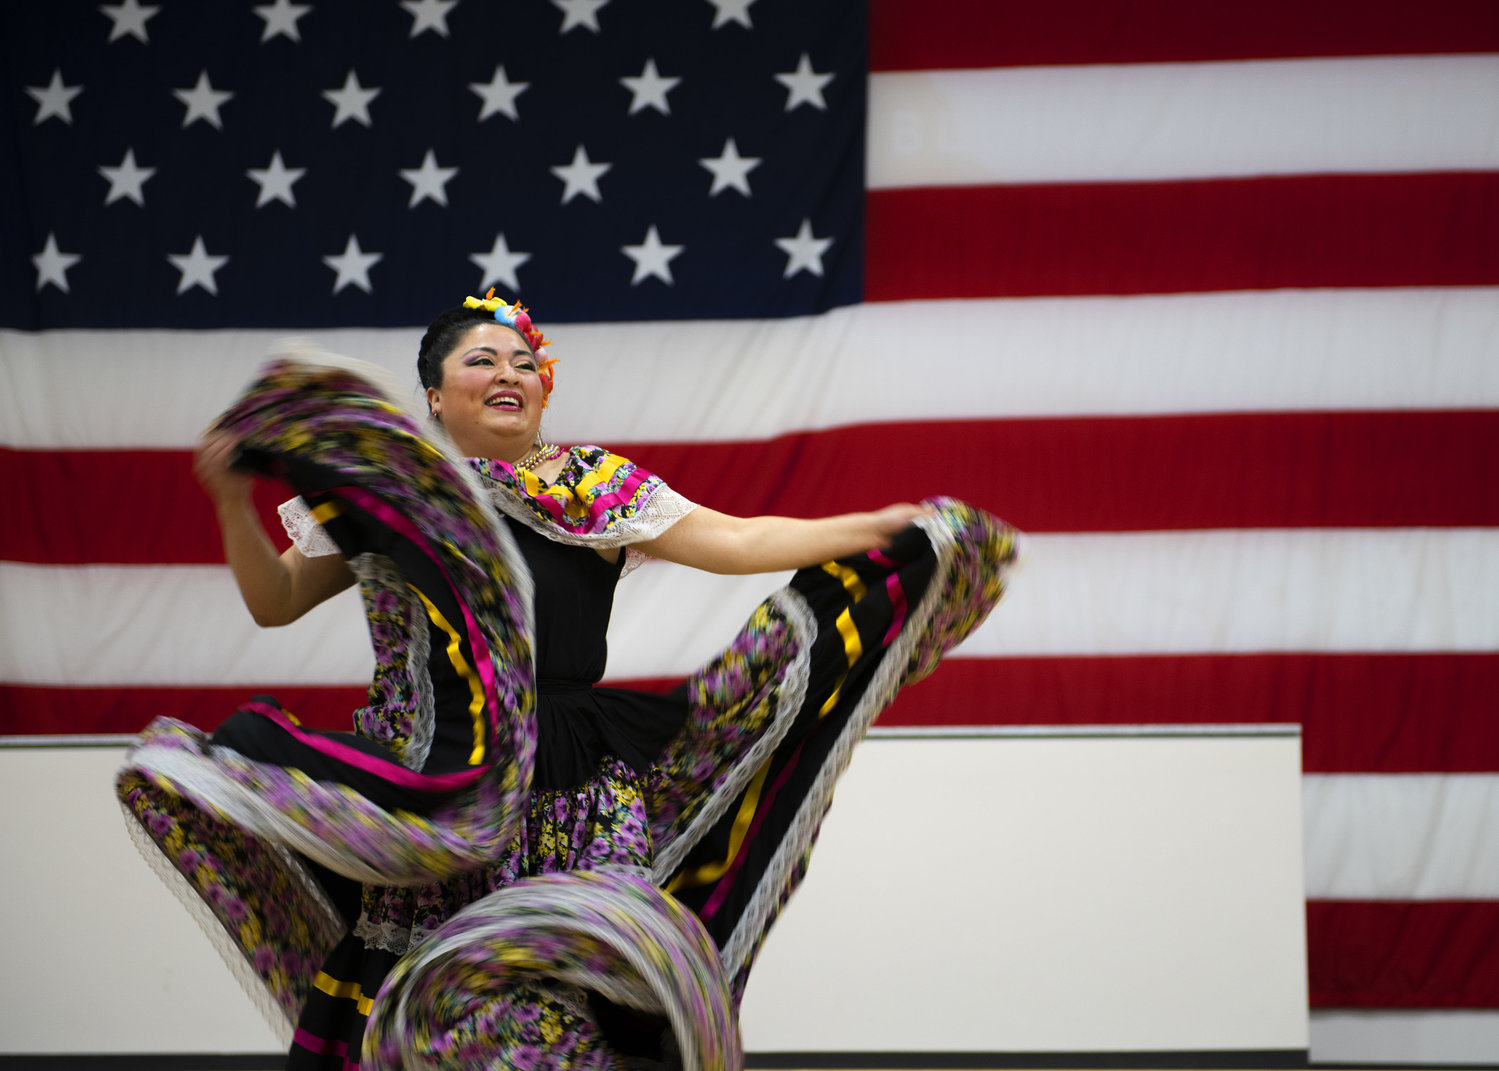 A member of the Ollin Yoliztli Mexican Folklore Dance Academy performs a traditional dance during the Hispanic Heritage Month closing ceremony at the Navy Operational Support Center, Oct. 15 at Luke Air Force Base in Glendale. Luke AFB observed HHM Sept. 15 to Oct. 15 to recognize the contributions of Latin people in society and provide education about their culture. [U.S. Air Force photo by Airman 1st Class Leala Marquez]